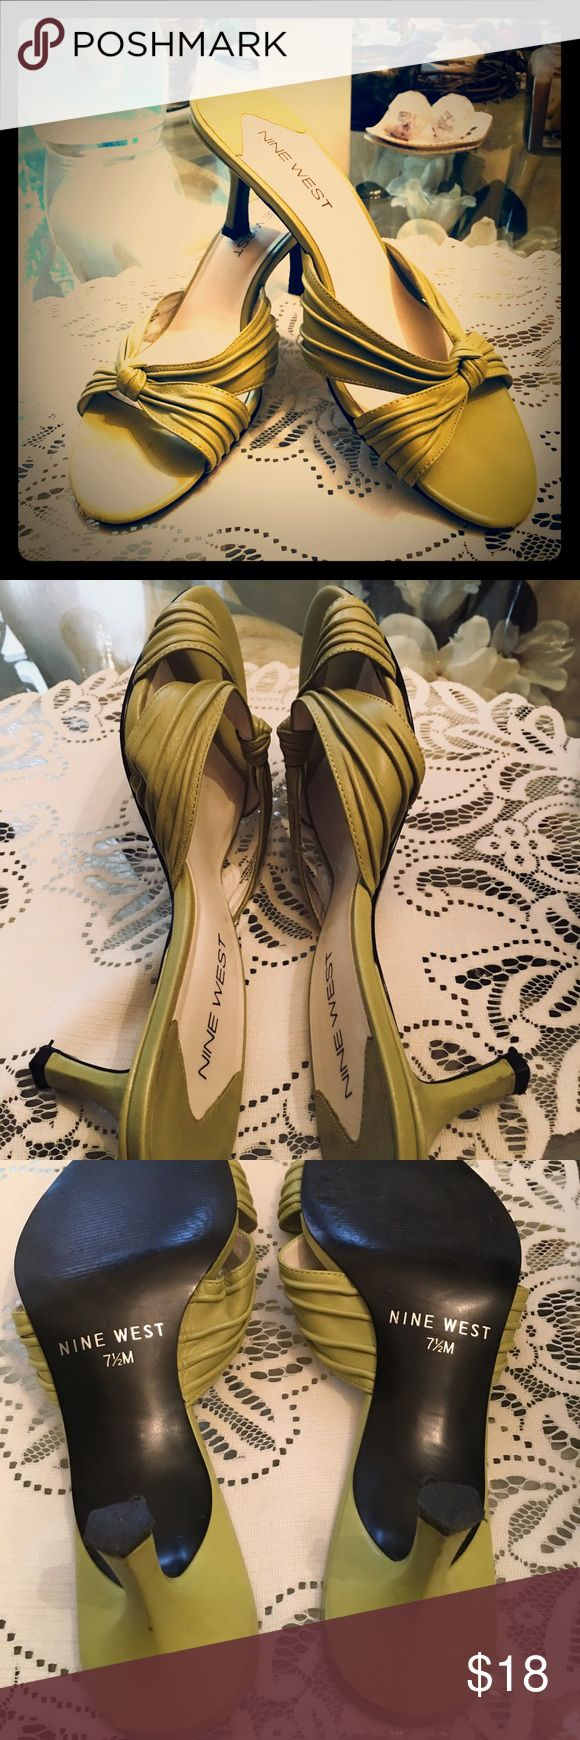 Nine West size 7.5 ladies shoes NIB Ladies 7.5 NINE WEST - New in box worn one time these are beautiful - kitten heel - Nine West Shoes Sandals